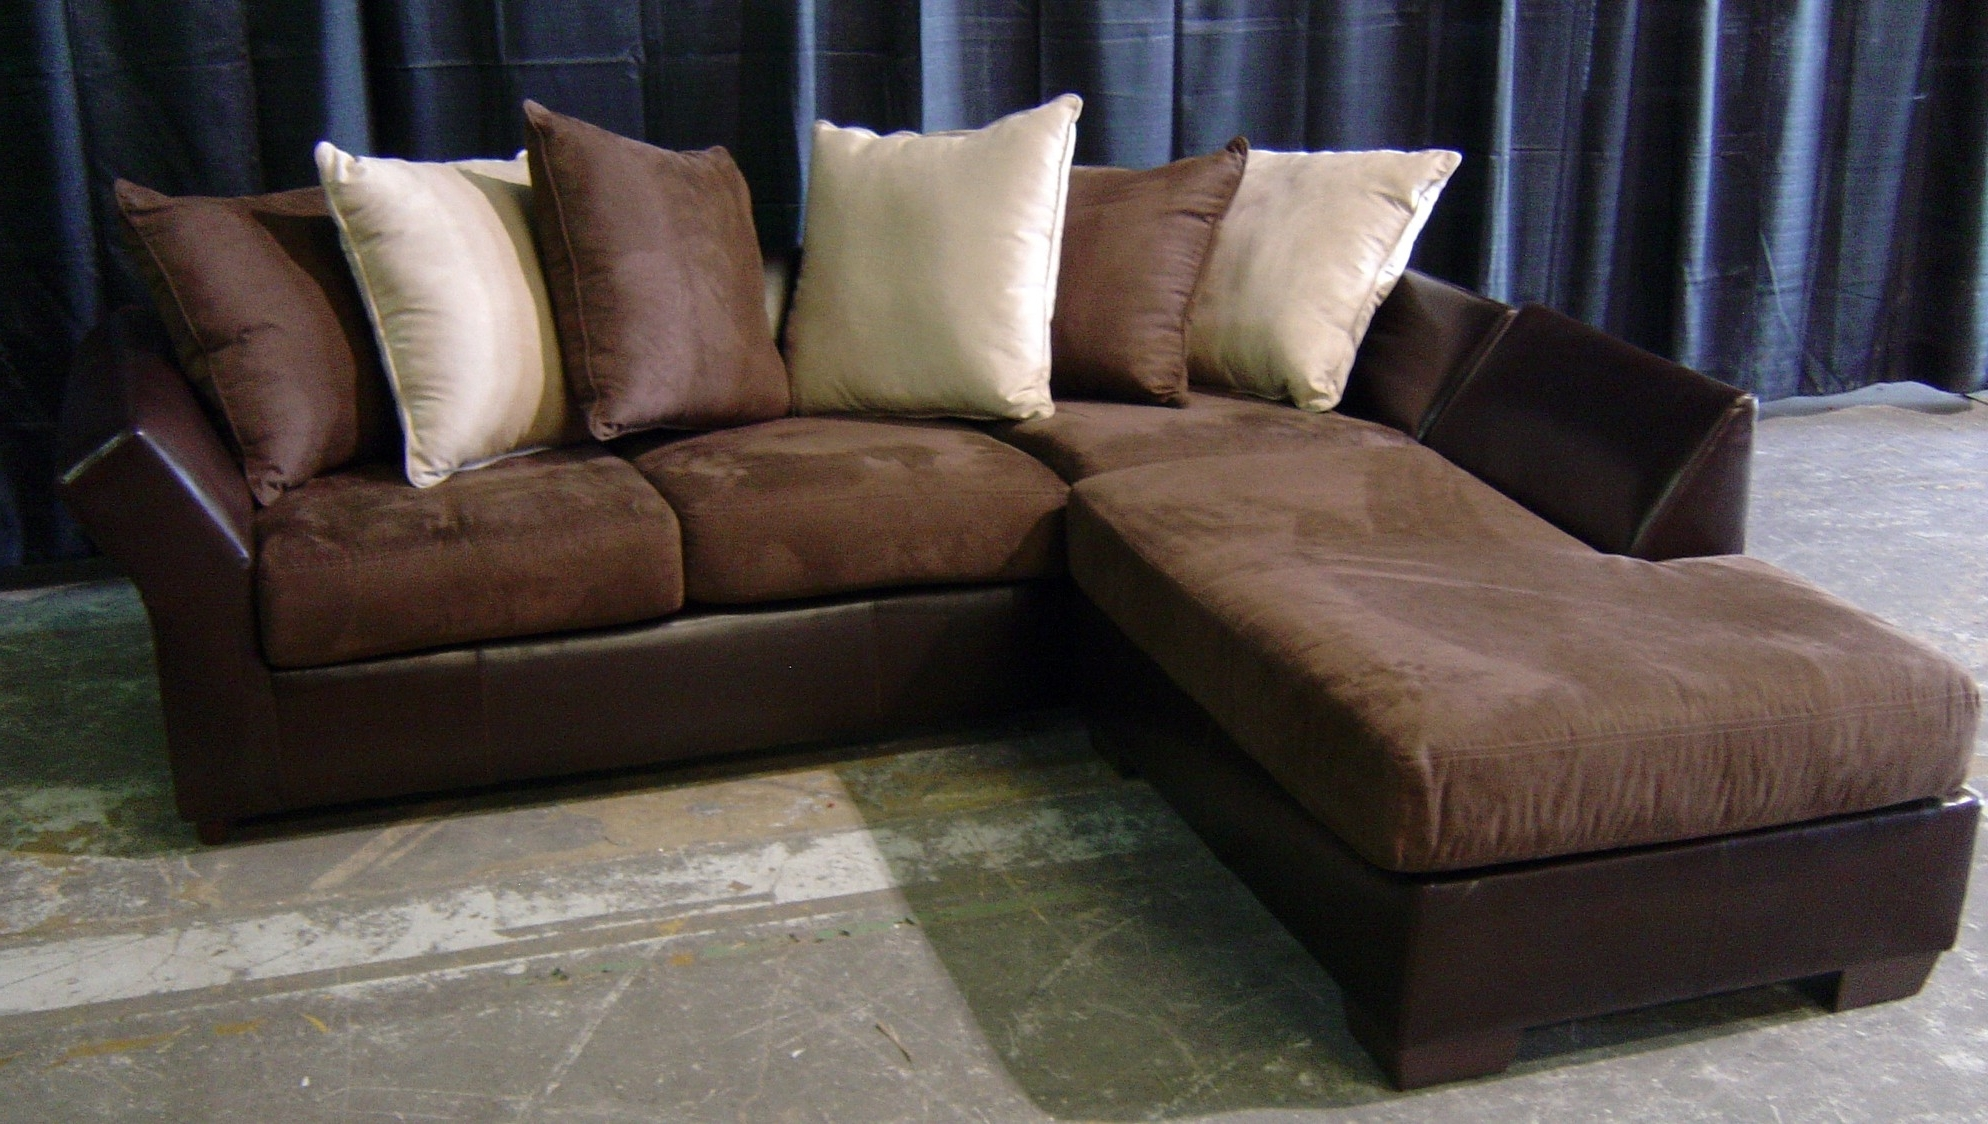 Greatest Top 20 of Leather And Suede Sectional Sofas TV59